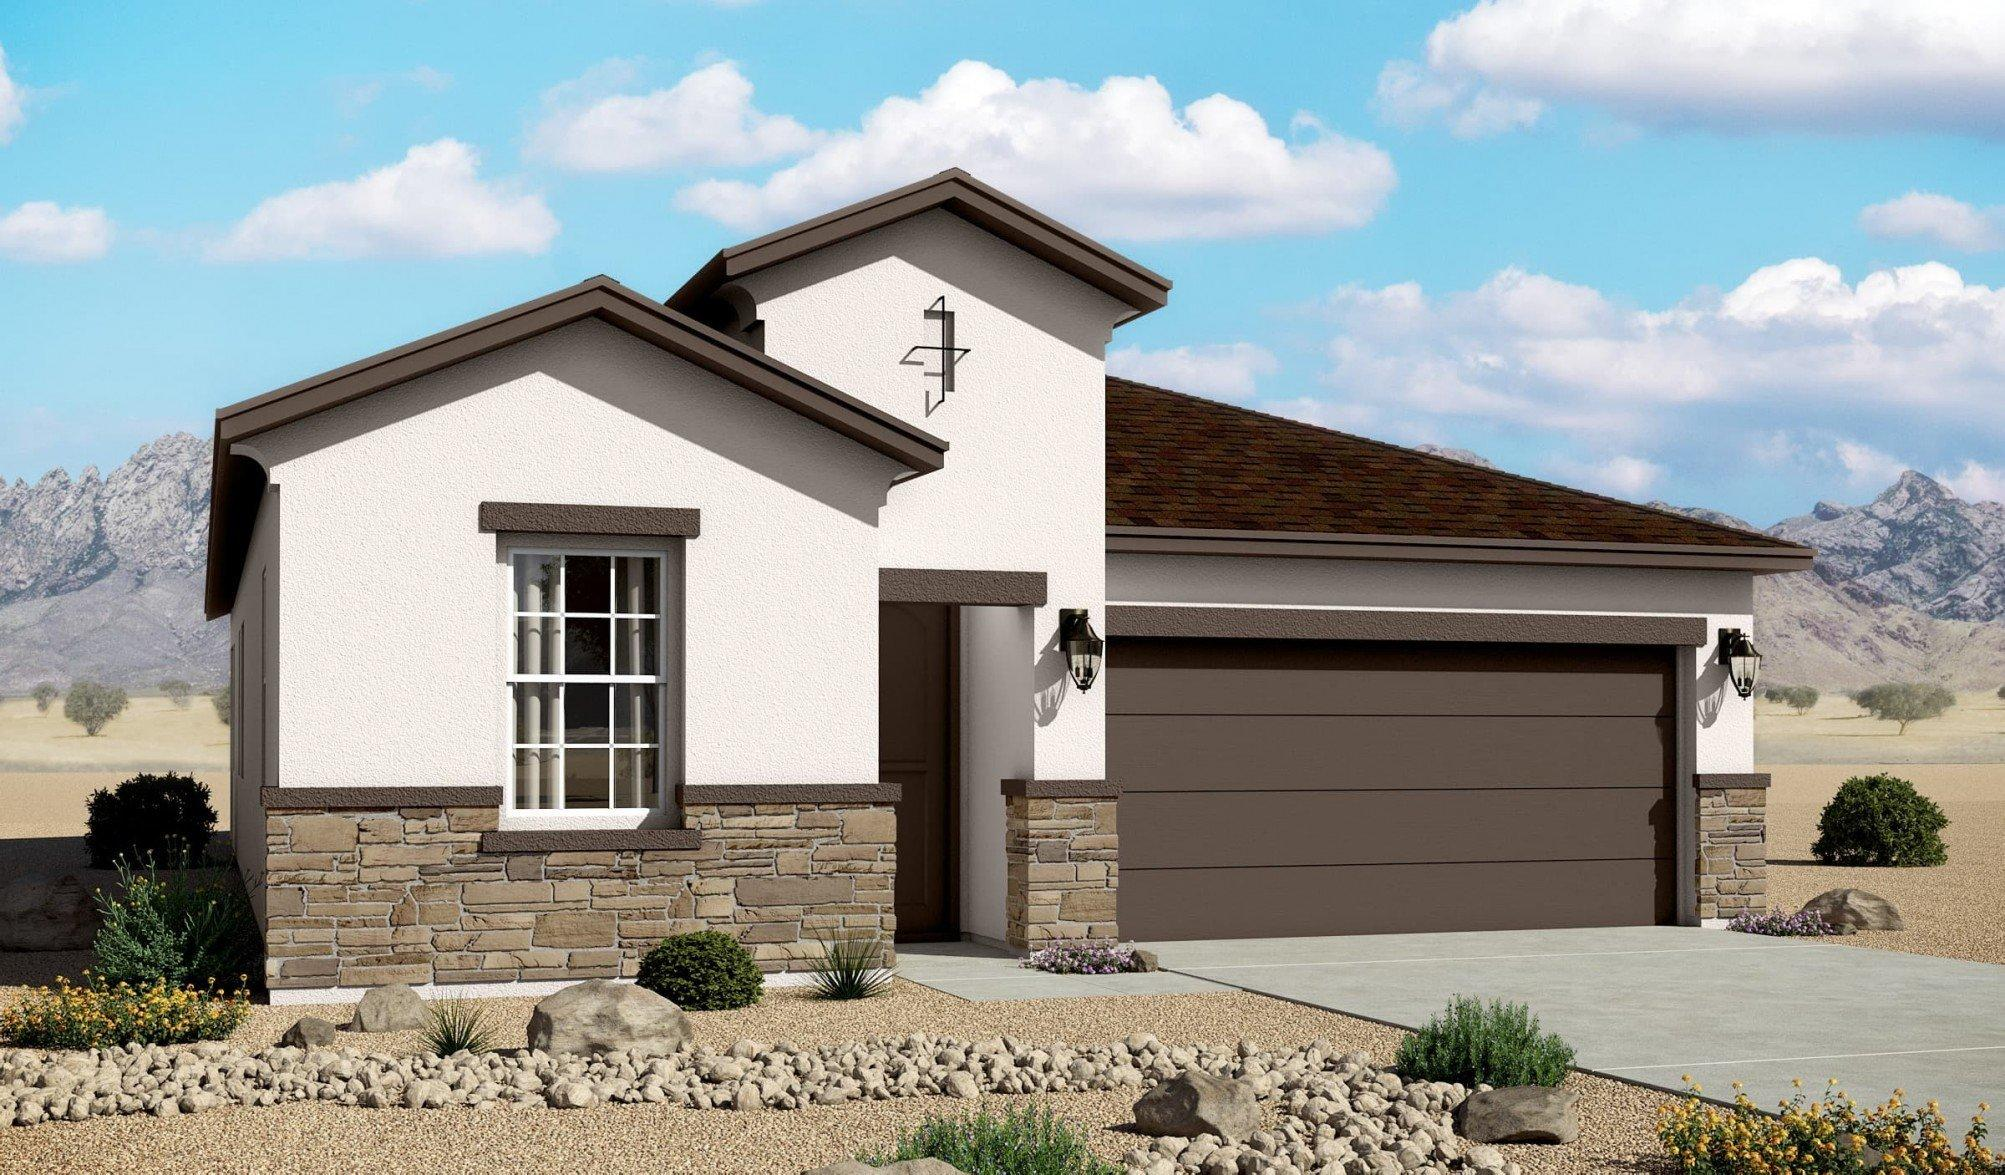 Estimated Completion January 2021 - NEW 1752 sqft home in Valle Prado features a stunning Gourmet Kitchen, upgraded 8' doors, NM green built, upgraded floor tile, beautiful backsplash, and the latest innovation in home building. This immaculate Hakes Brothers home has 4 bedrooms and 2 bathrooms. Come and see the place you'll call home. Call today to see the model home!